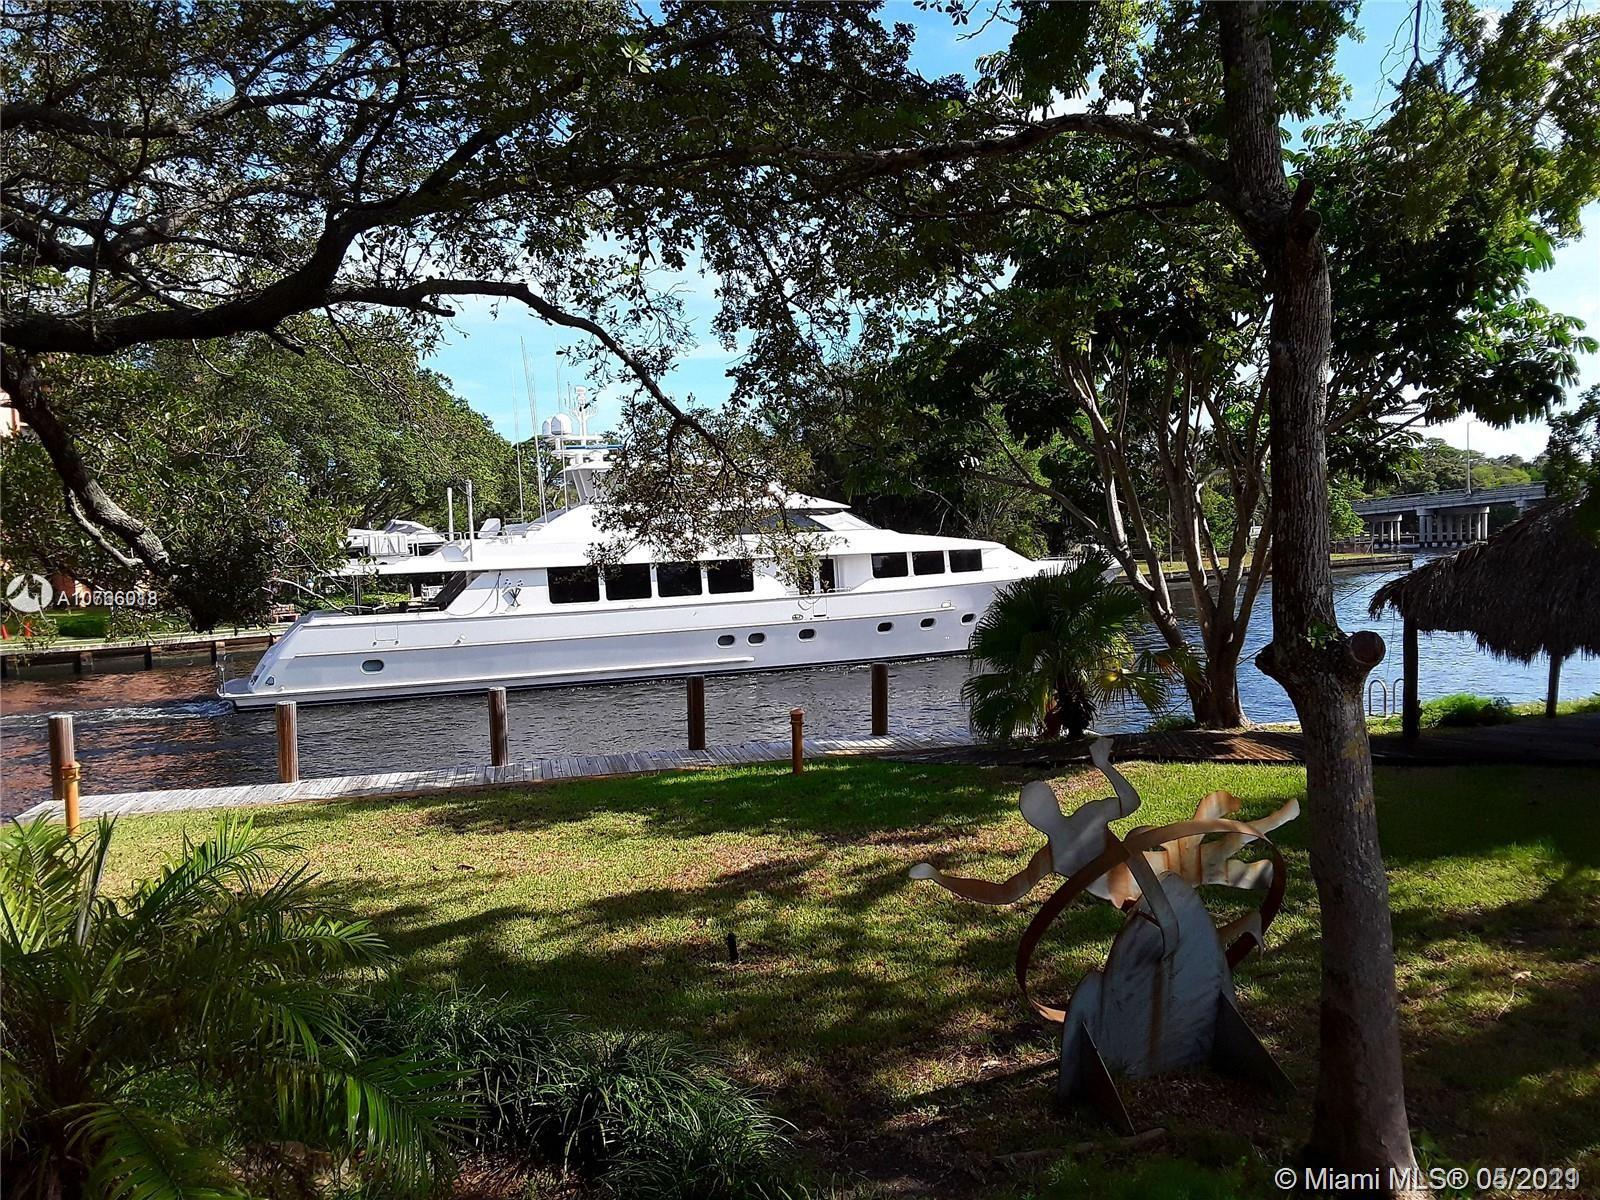 """* THE LARGEST LOT IN EAST FORT LAUDERDALE WITH MEGA YACHT DOCKAGE *  MASSIVE 32,000 SQ FT PROPERTY DIRECTLY ON THE WIDEST PART OF THE NEW RIVER  * 130 FT OF SEAWALL !  NO-FIXED BRIDGE WITH DEEP WATER DOCKAGE! LOCATED IN A NO-WAKE ZONE! (CAN LEGALLY HOLD A LARGE YACHT UP TO 120 FT WITH A 30 FT BEAM) VERY HARD TO FIND! * THERE IS A NICE 4/3 RANCH HOME ON THE PROPERTY WITH APPROX. 4000 SQ FT. THE HOME IS IN GOOD SHAPE WITH NEW ROOF IN 2020. POOL WITH A 2 CAR GARAGE! THIS PROPERTY OFFERS """"OLD FLORIDA"""" PARK LIKE GROUNDS WITH ROOM FOR A NEW MASSIVE ESTATE HOME WITH TENNIS/BASKETBALL COURT.  THE HUGE CIRCULAR DRIVEWAY CAN HOLD UP TO 20+ CARS INSIDE YOUR SECURED PRIVATE COMPOUND. THE PERFECT PROPERTY IF YOUR LOOKING FOR EXTREME PRIVACY. 5 MINUTES TO DOWNTOWN AND 10 MINUTES TO THE AIRPORT."""